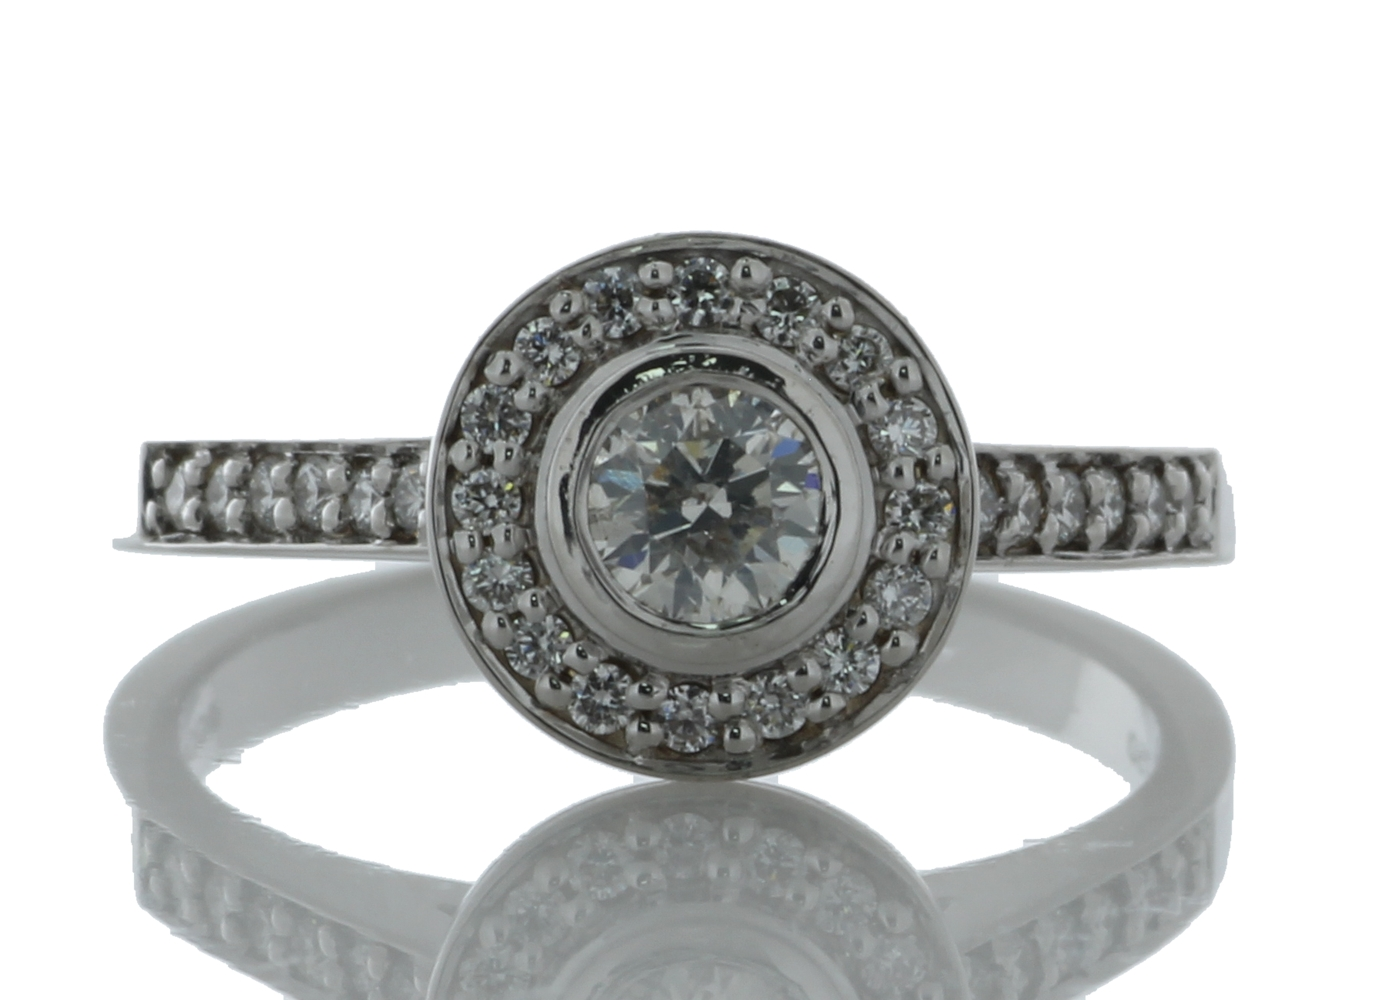 View Our Diamond Engagement Ring Collection